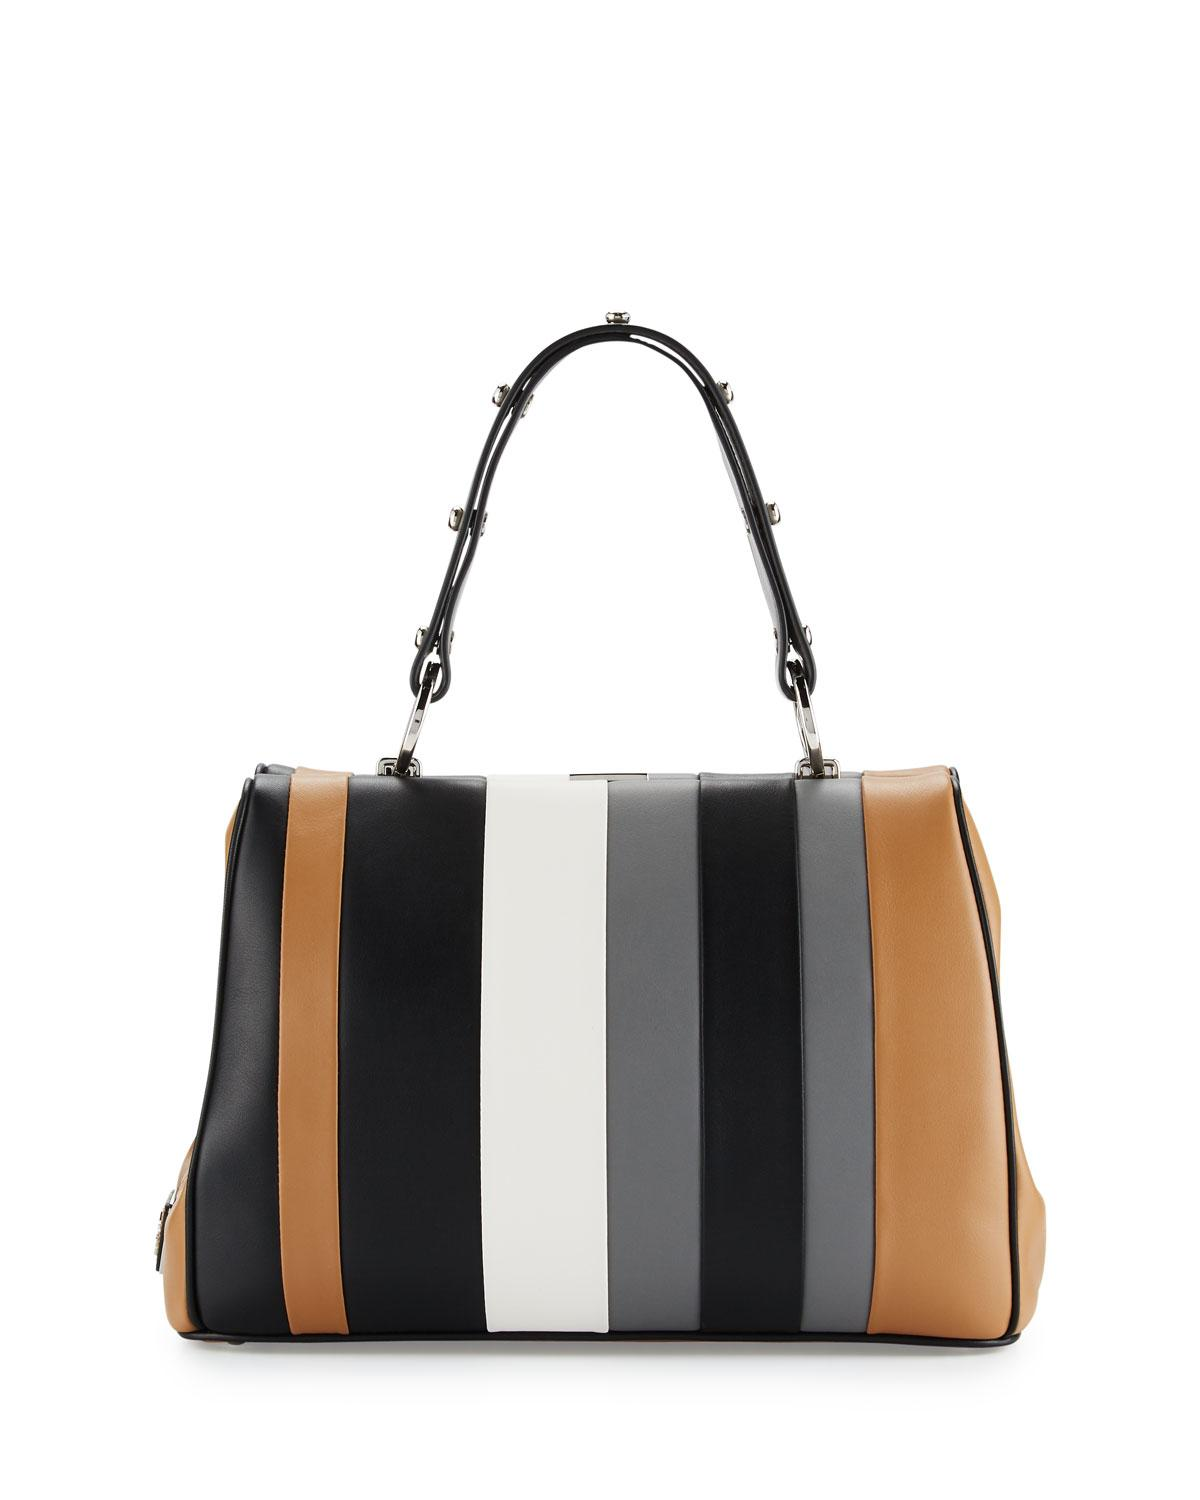 d6e729148469d4 Prada Baiadera Striped Leather Satchel Bag in Gray - Lyst